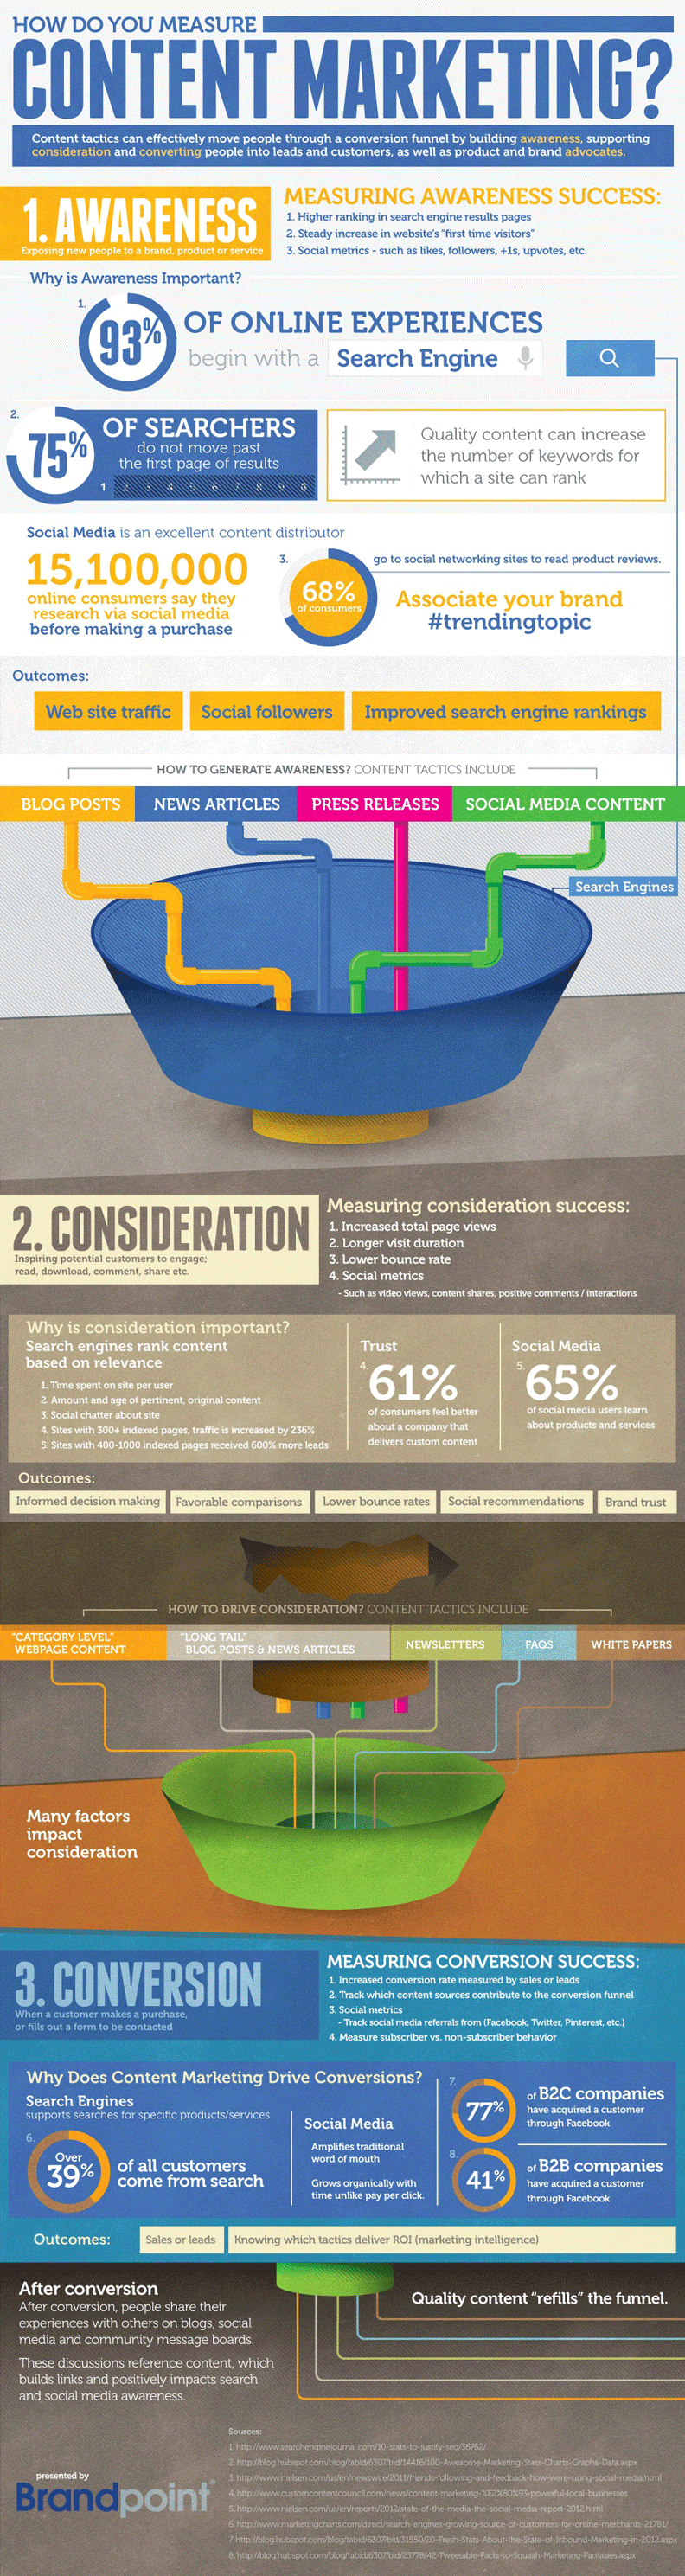 how-to-measure-your-content-marketing-success-infographic.png